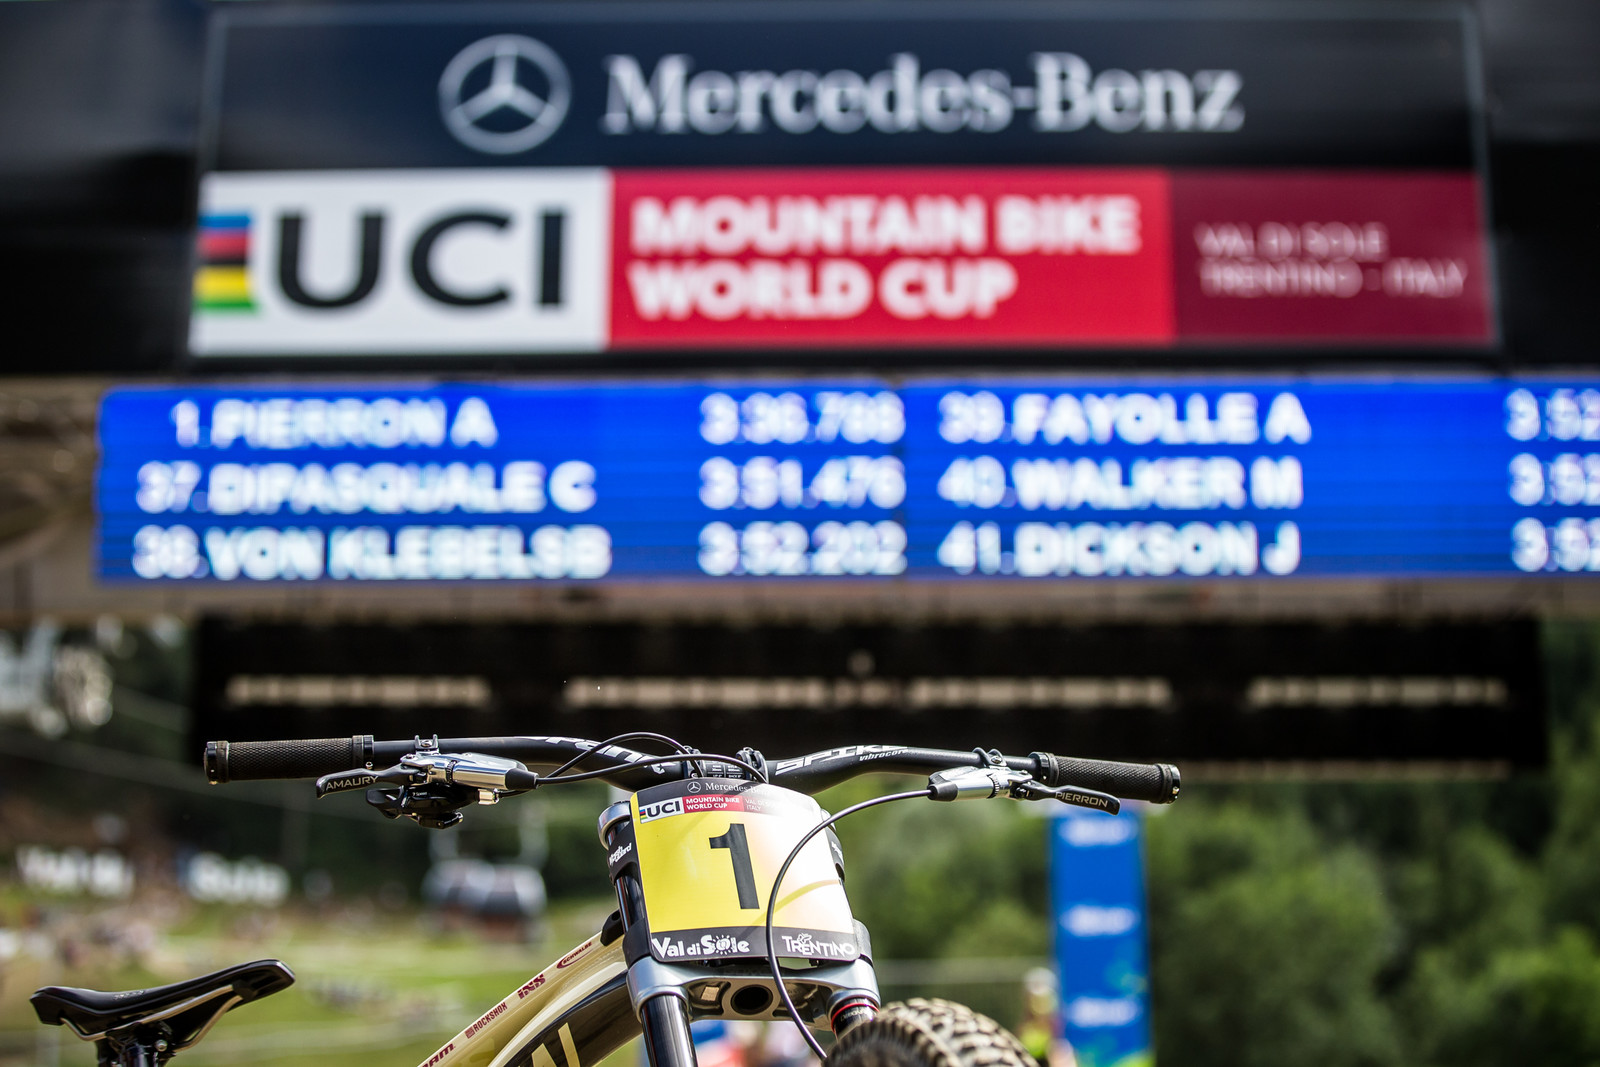 Caught You Hiding! - WINNING BIKE - Amaury Pierron's Commencal Supreme DH 29 - Mountain Biking Pictures - Vital MTB